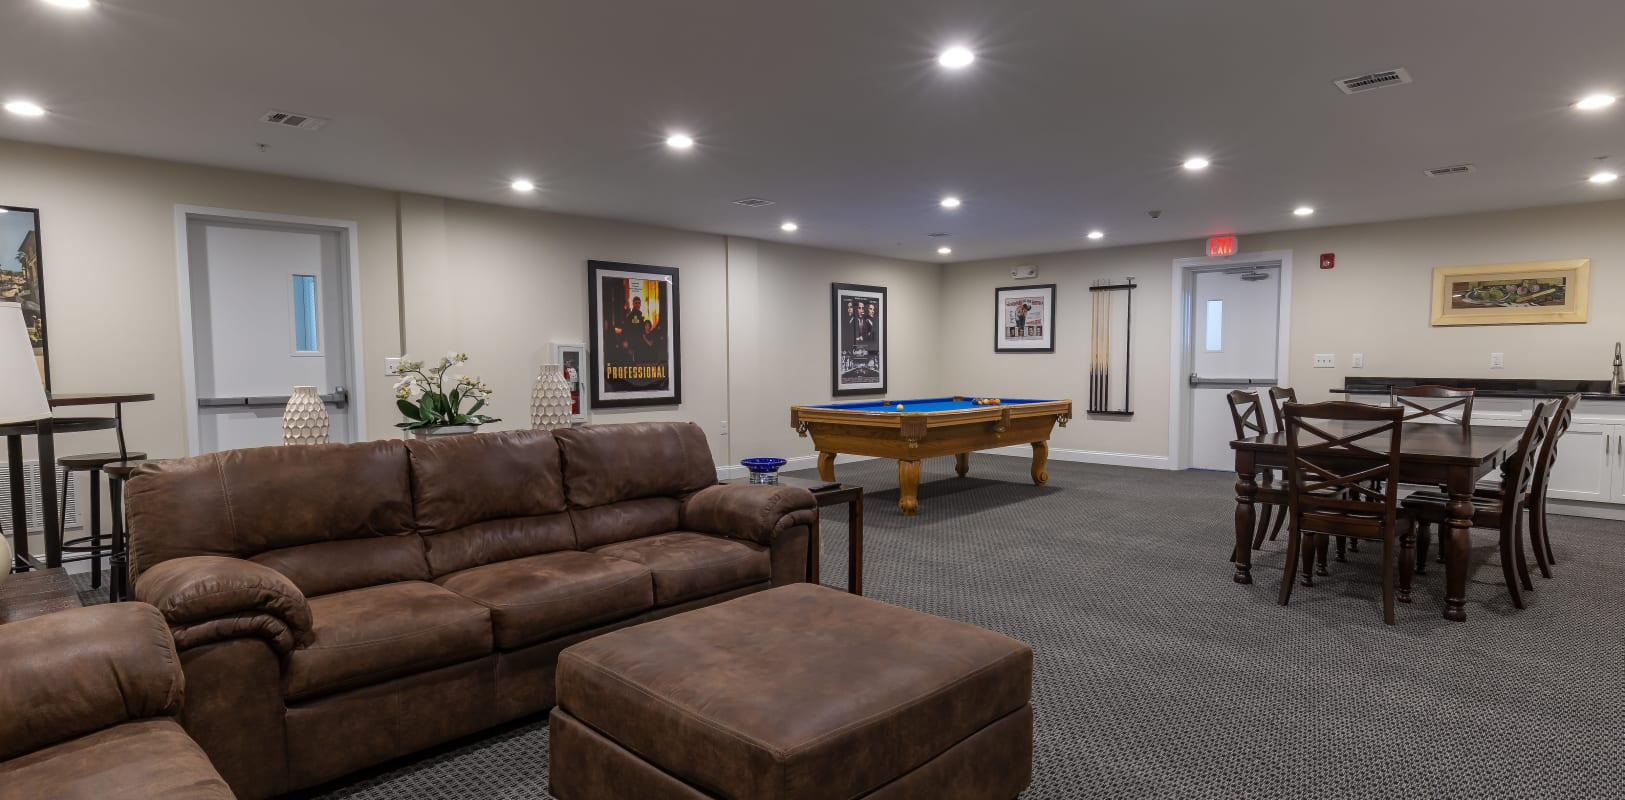 Clubhouse area with couches to relax at Zephyr Ridge in Cedar Grove, New Jersey